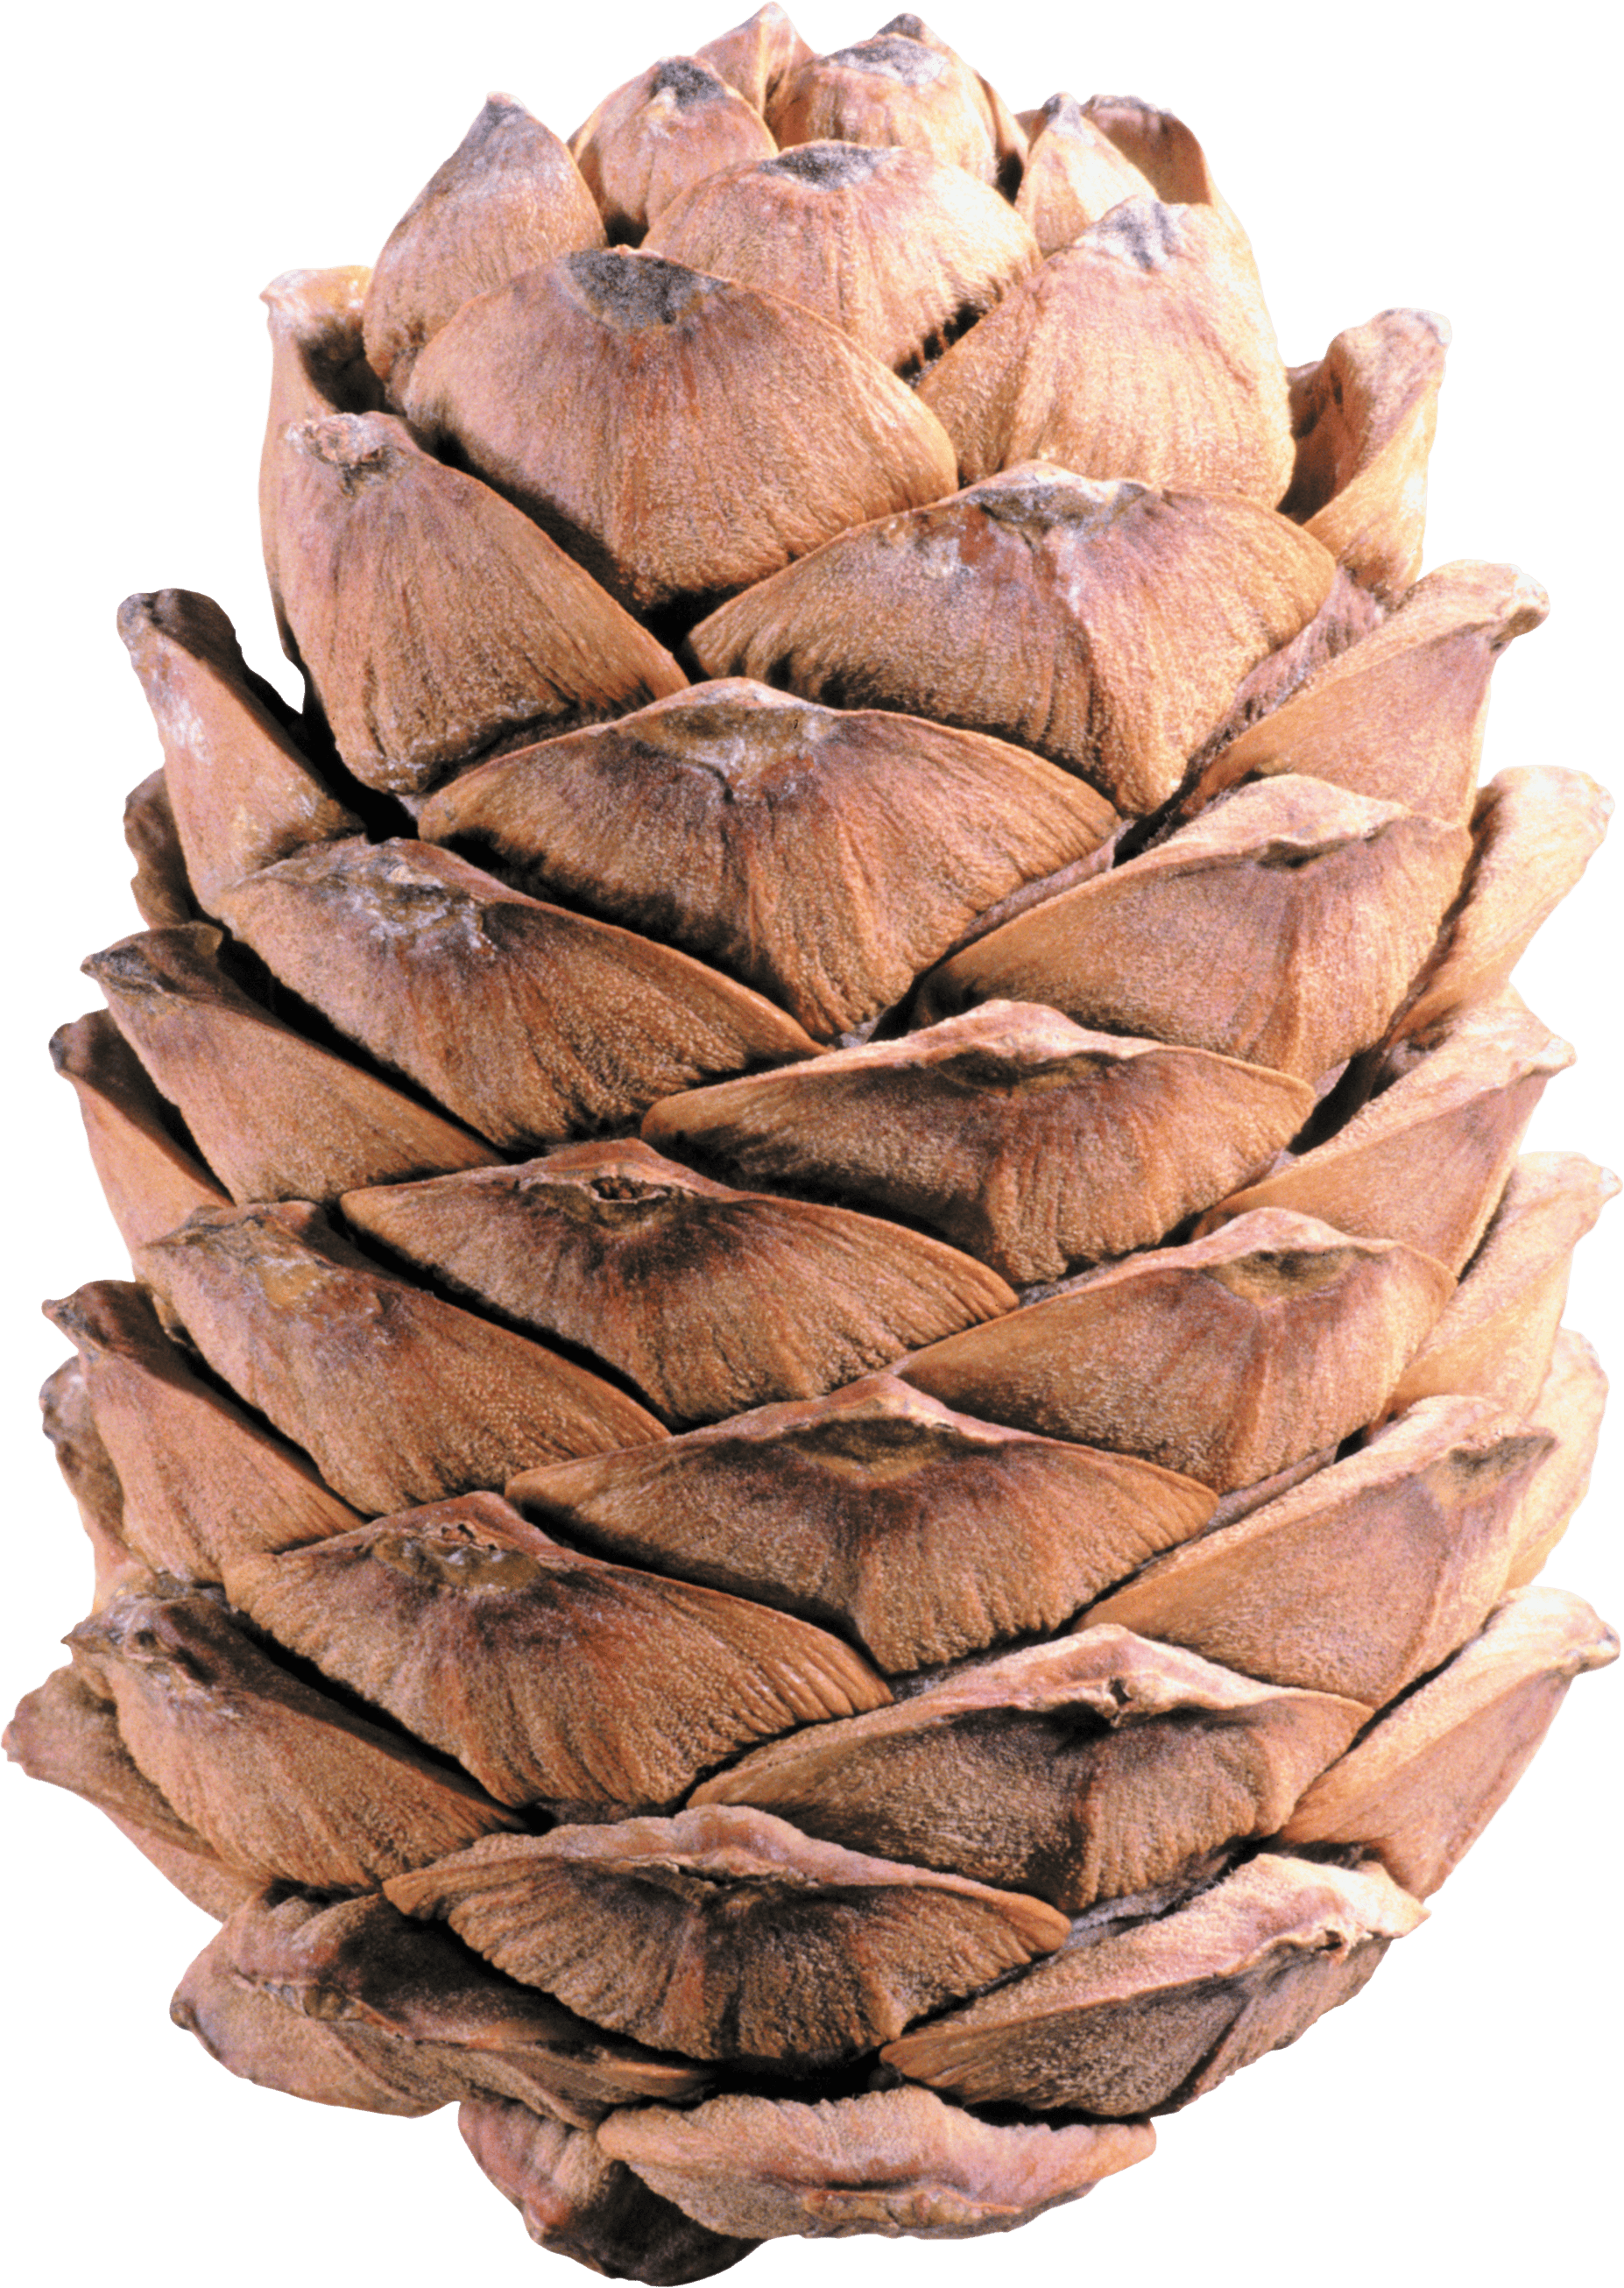 Fall pine cones png. Light brown cone transparent